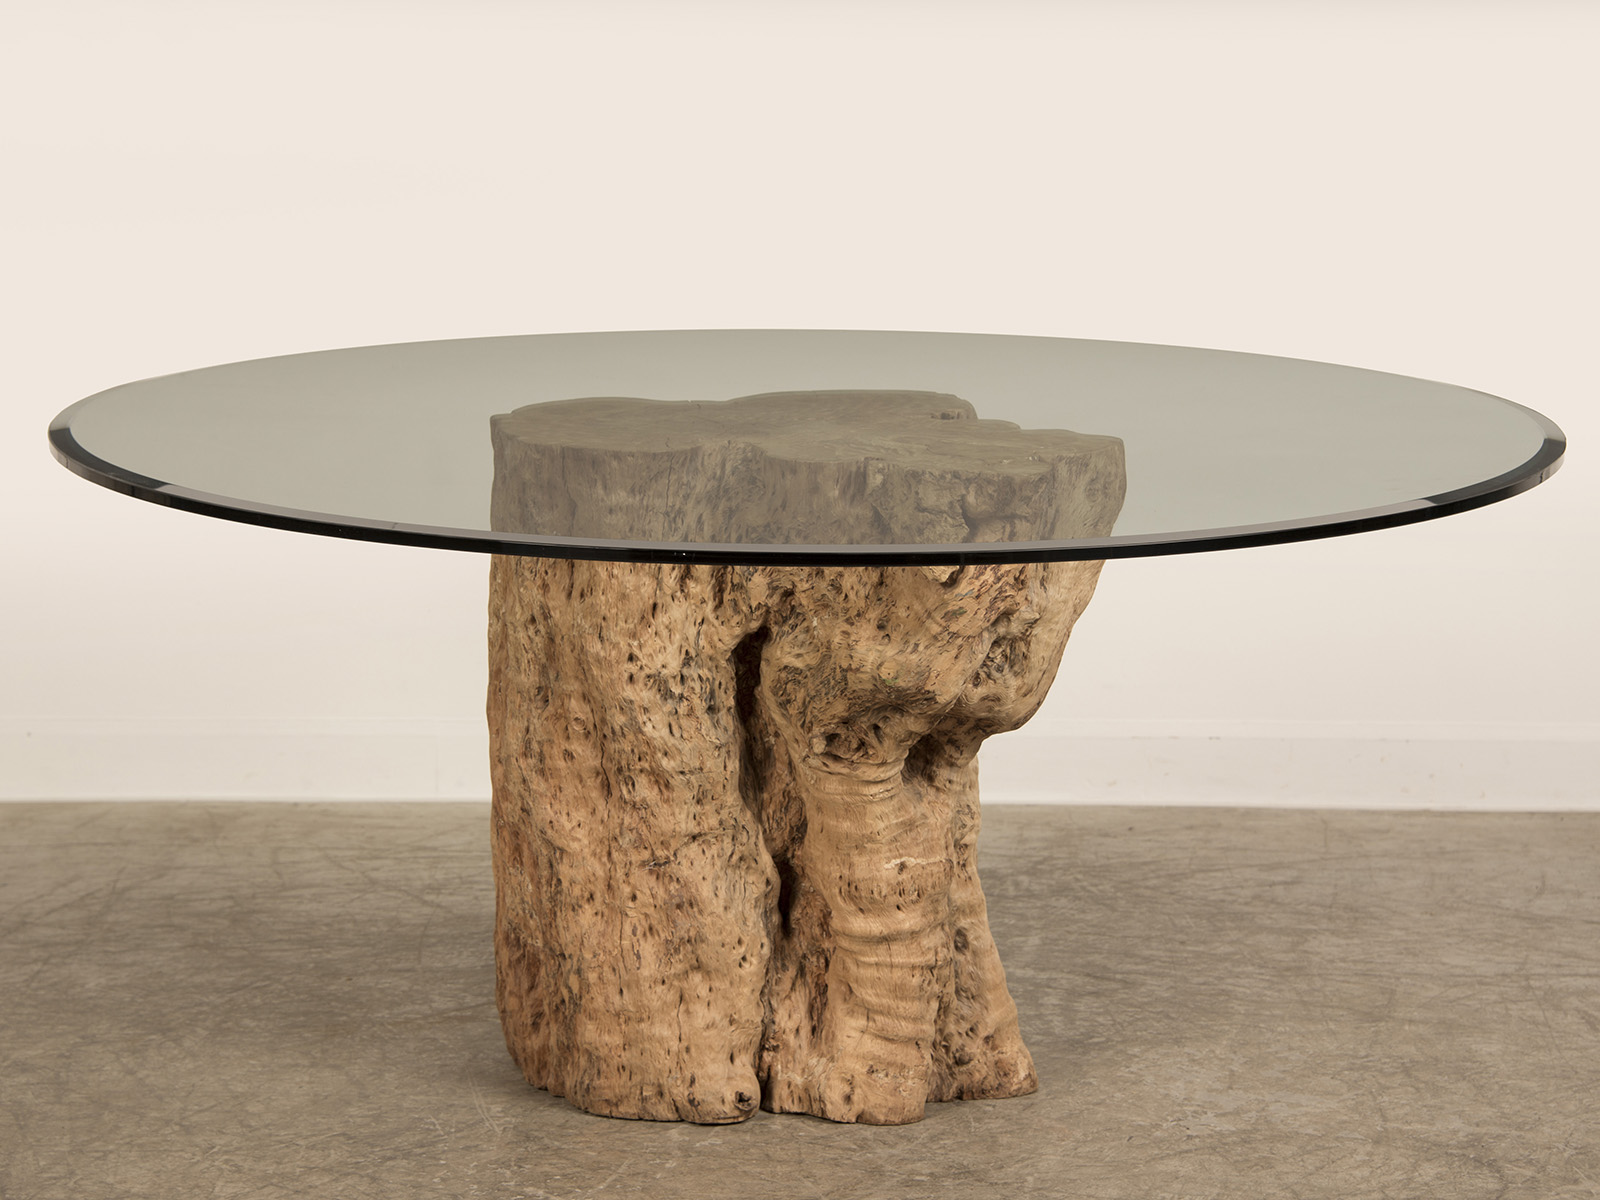 Charmant Tree Trunk Coffee Table Glass Top Beautiful Interior Furniture Design  Simple Woodworking Projects For Cub Scouts